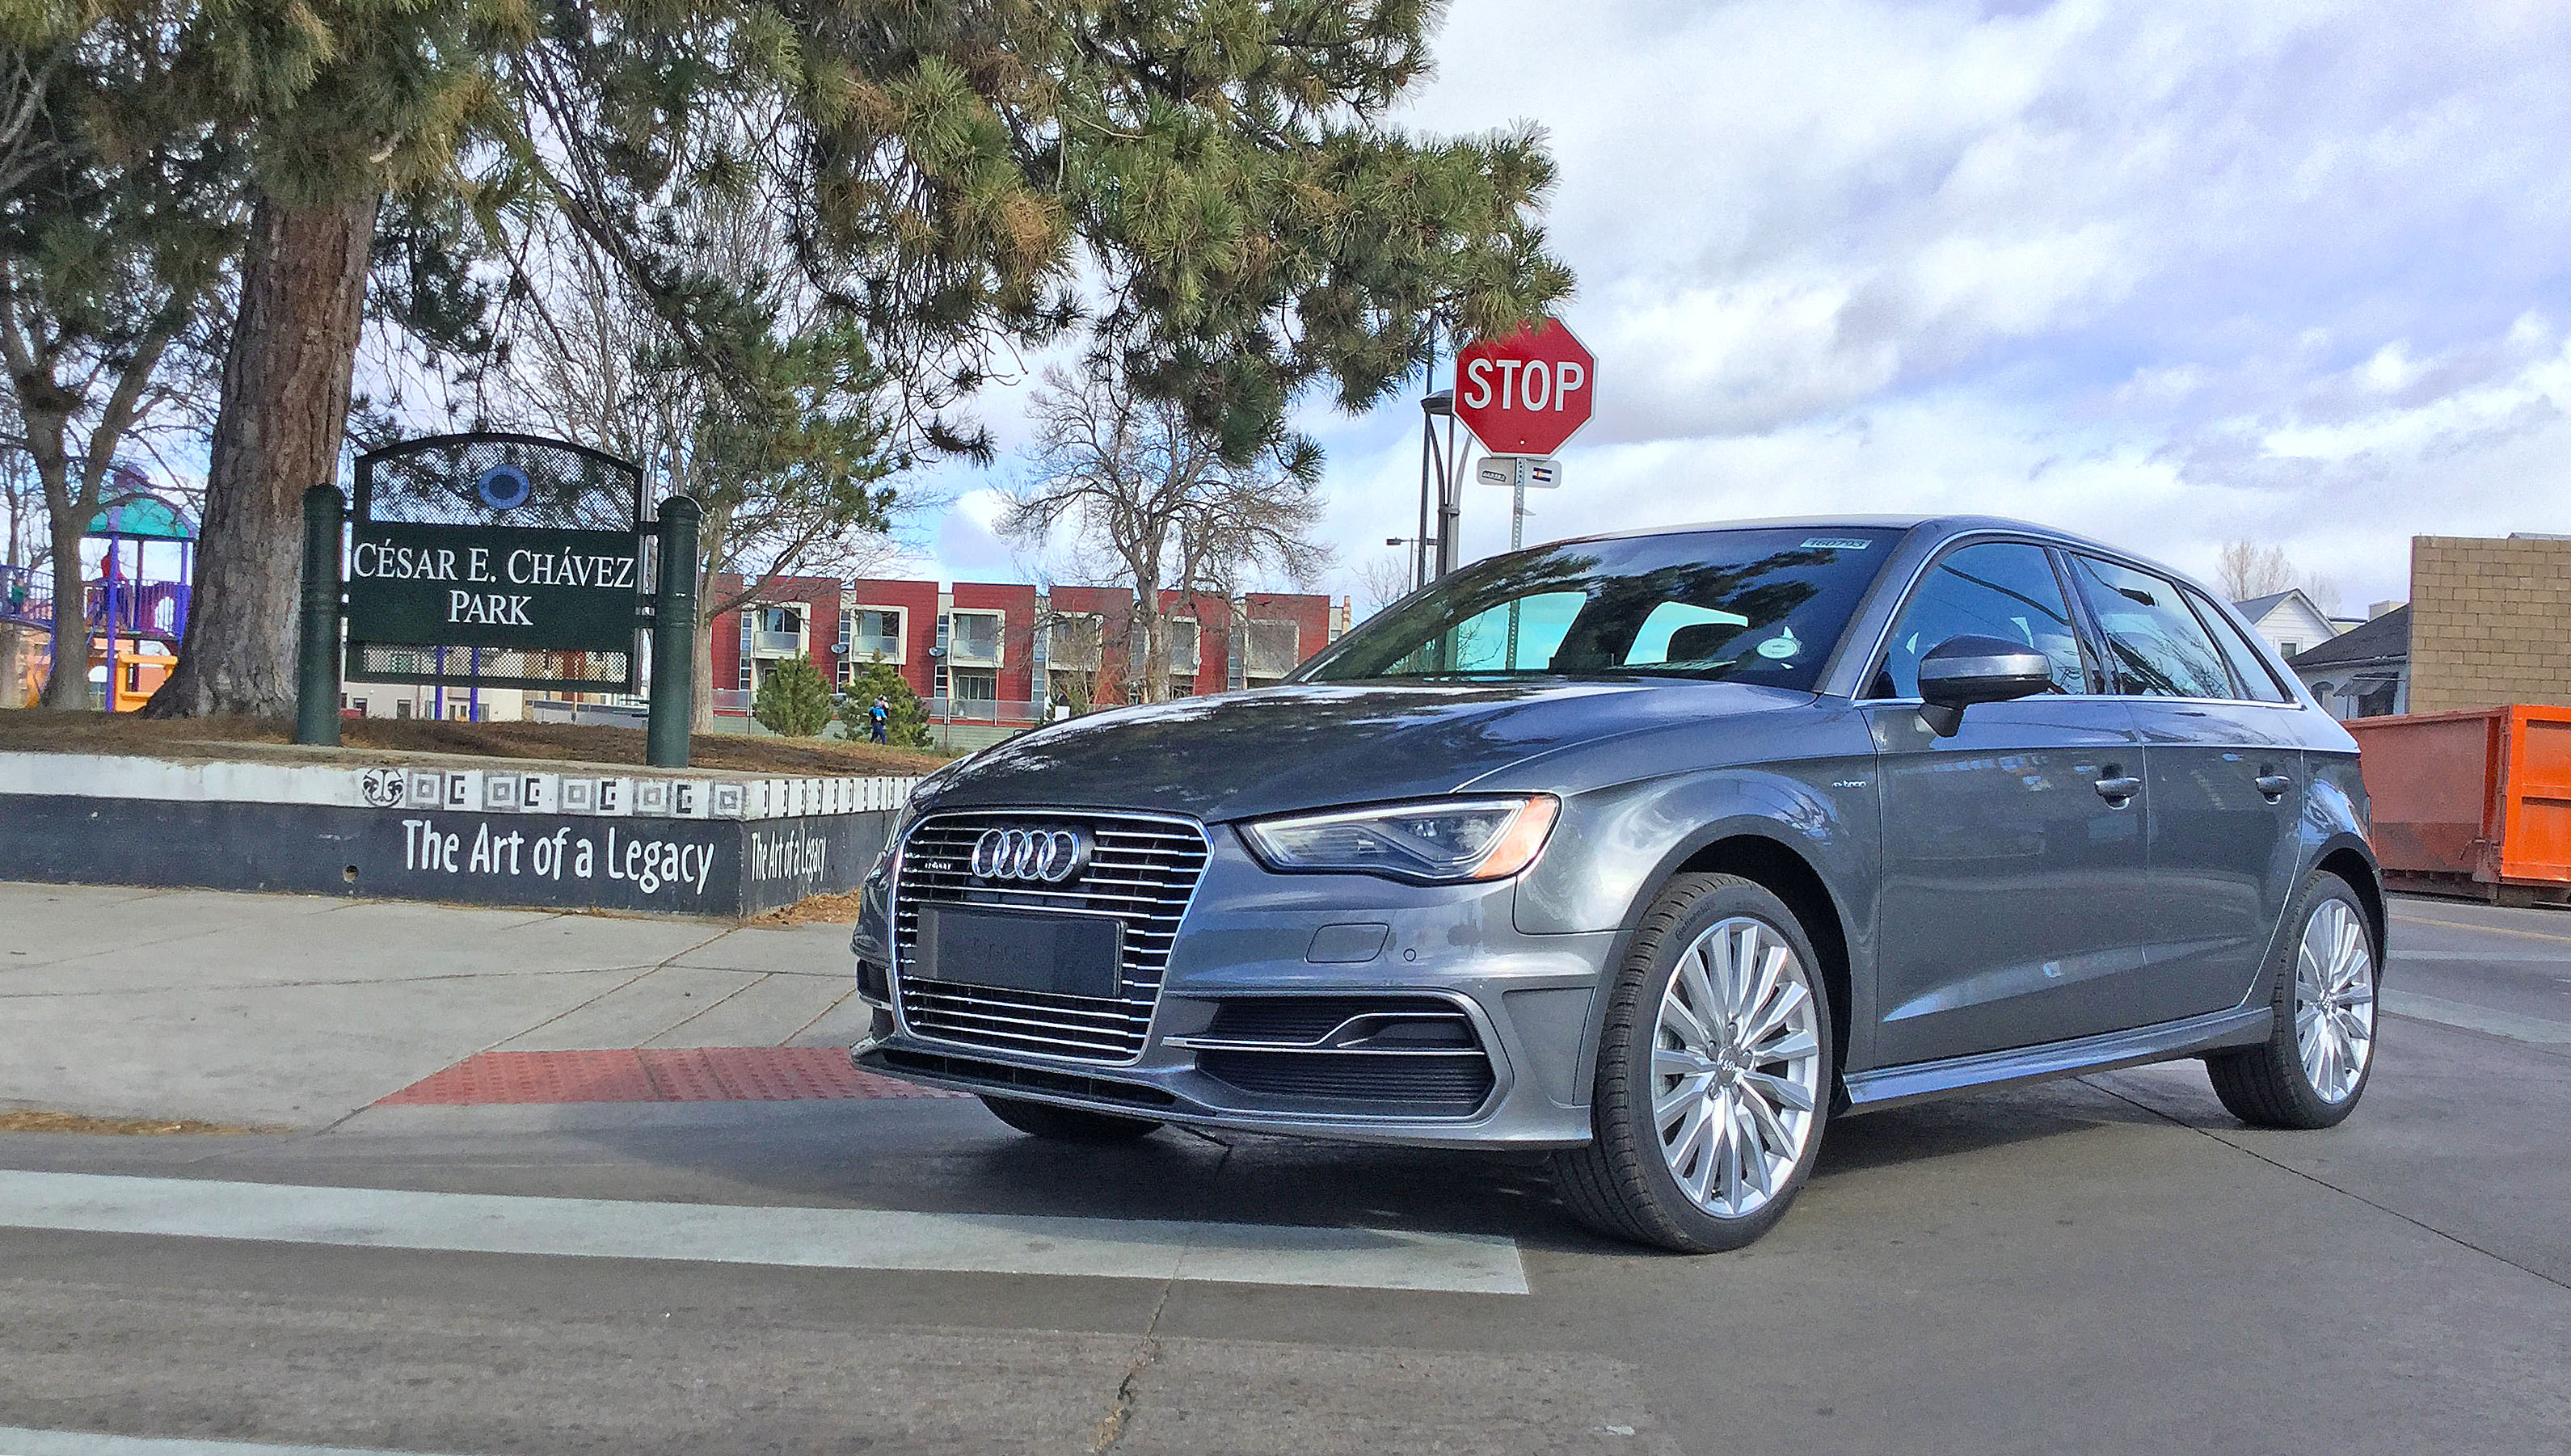 Audi A3 e-tron at Cesar Chavez Park, located at the intersection of Tennyson St. and W 41st Ave. in the Berkeley neighborhood of Denver, CO.